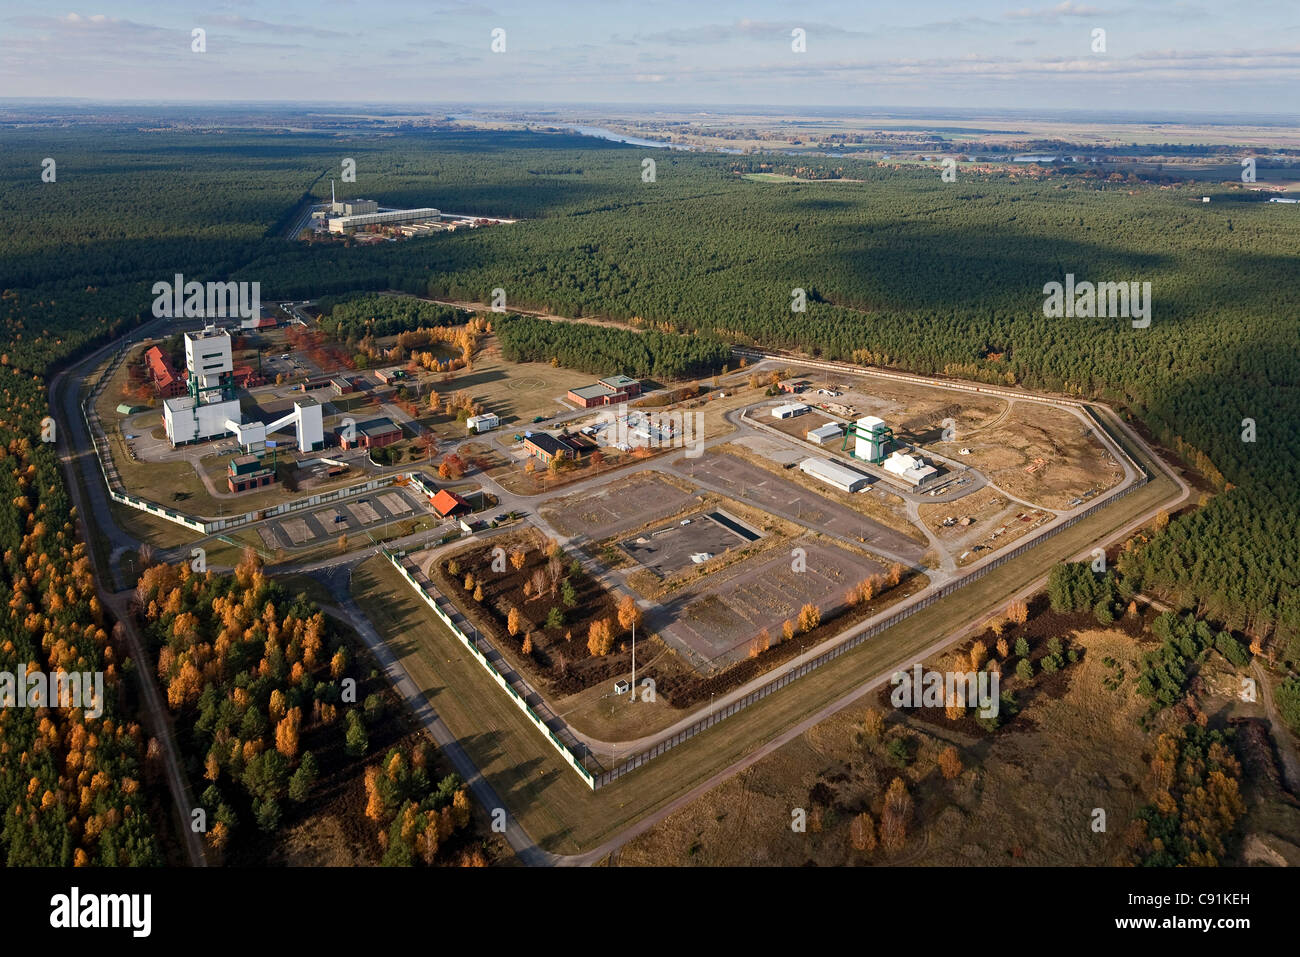 Aerial photo of the interim nuclear waste depot at Gorleben in Lower Saxony, Germany - Stock Image